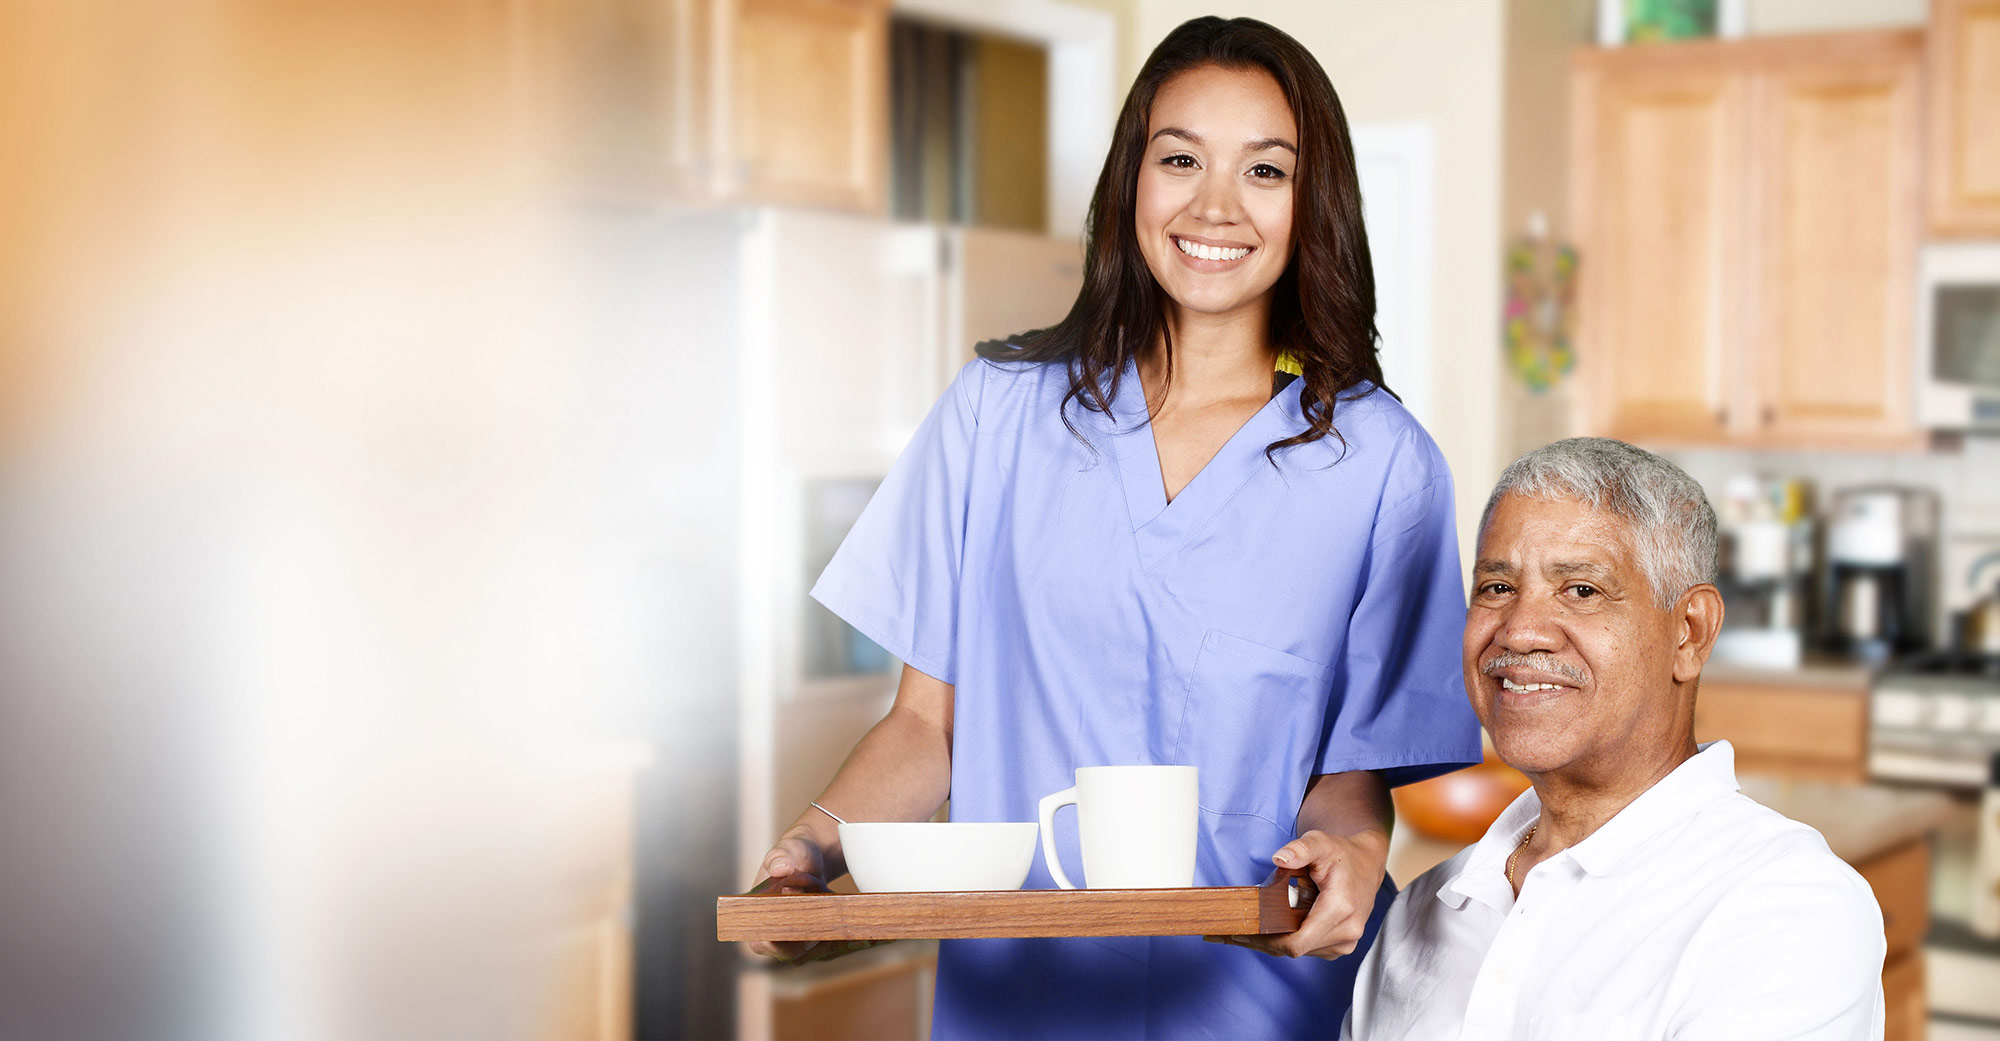 Benefits of Home Healthcare Services ...yourstory.com